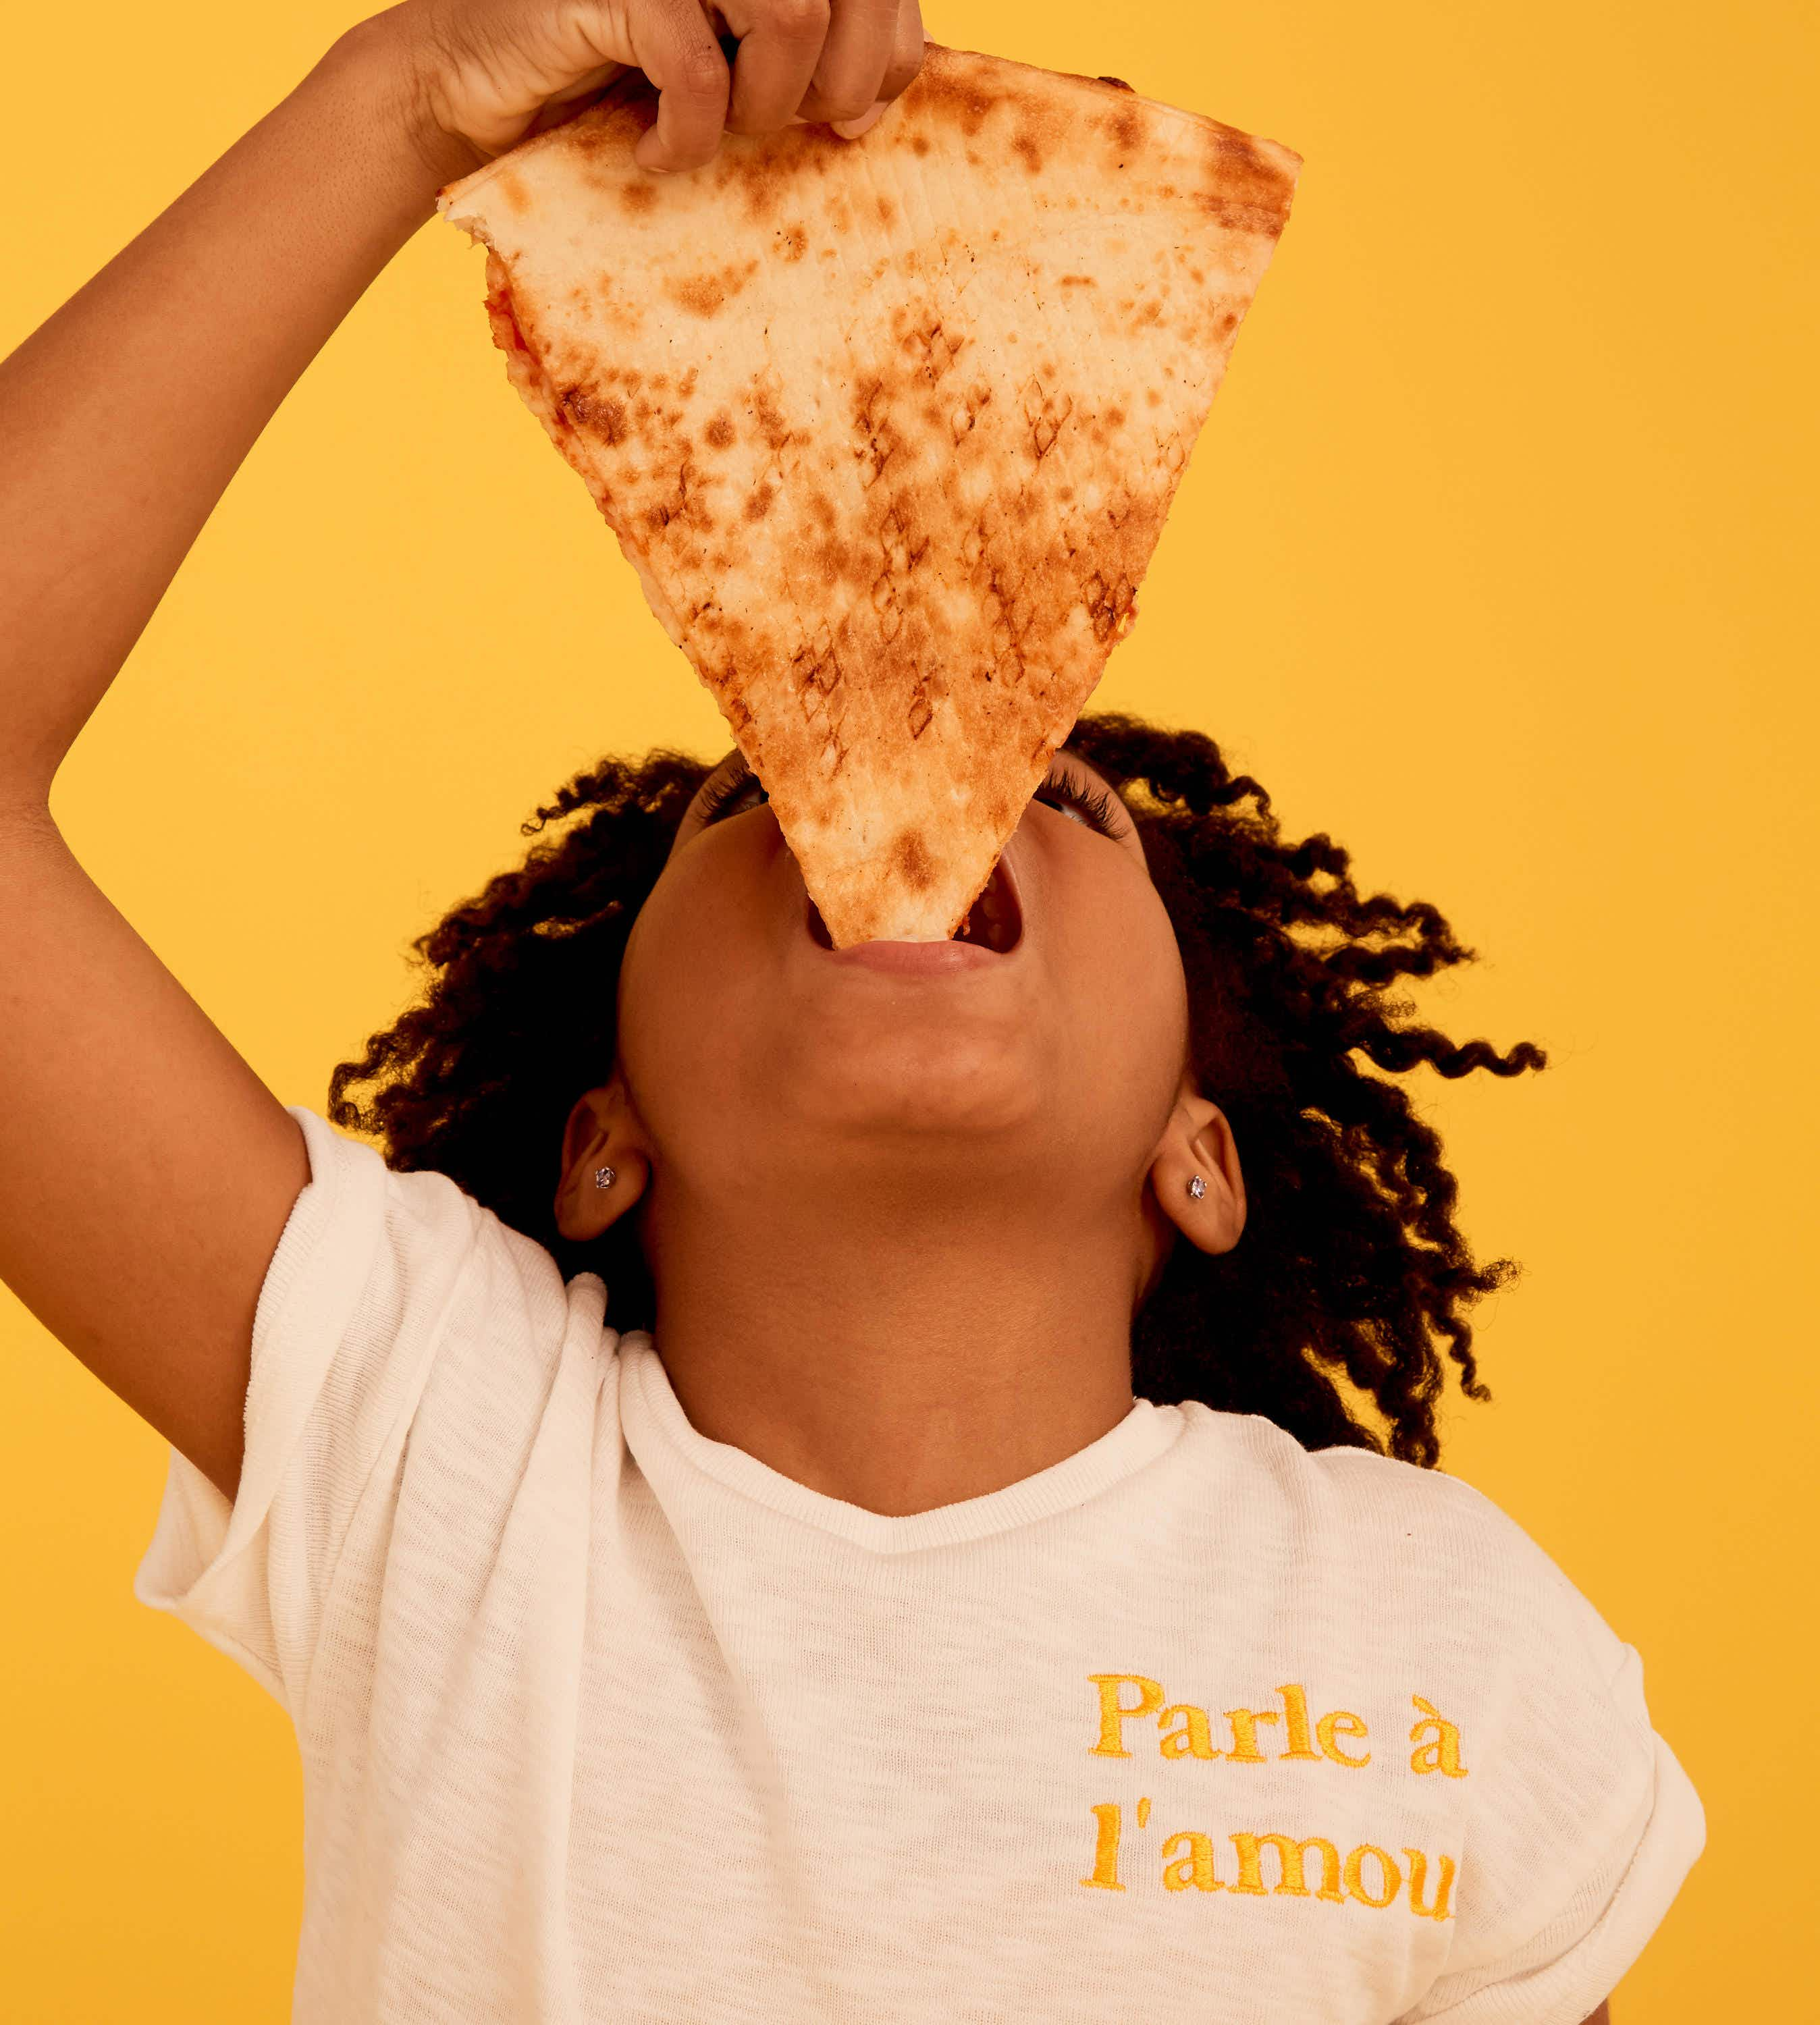 New York is getting a pop-up museum dedicated to cheesy good pizza